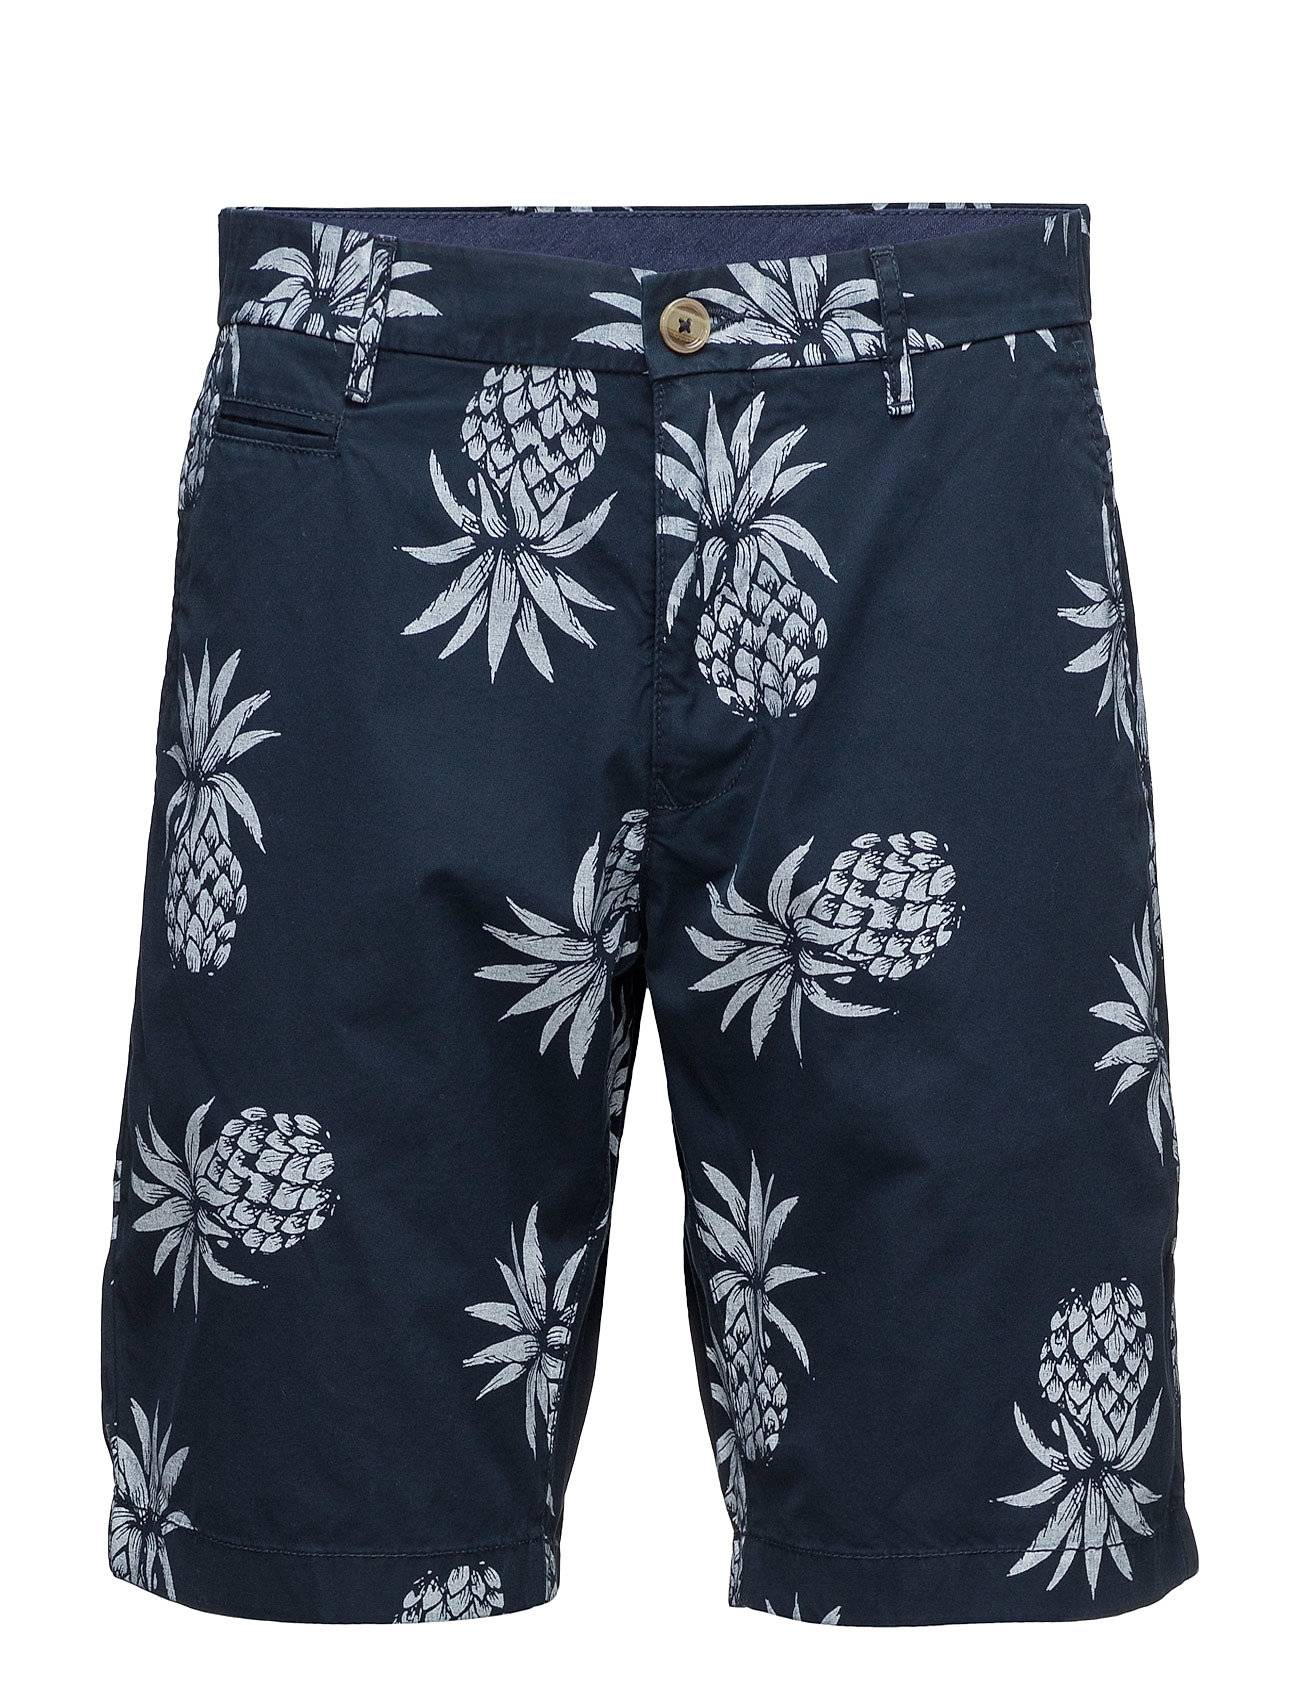 Tommy Hilfiger Brooklyn Short Pineapple Prt